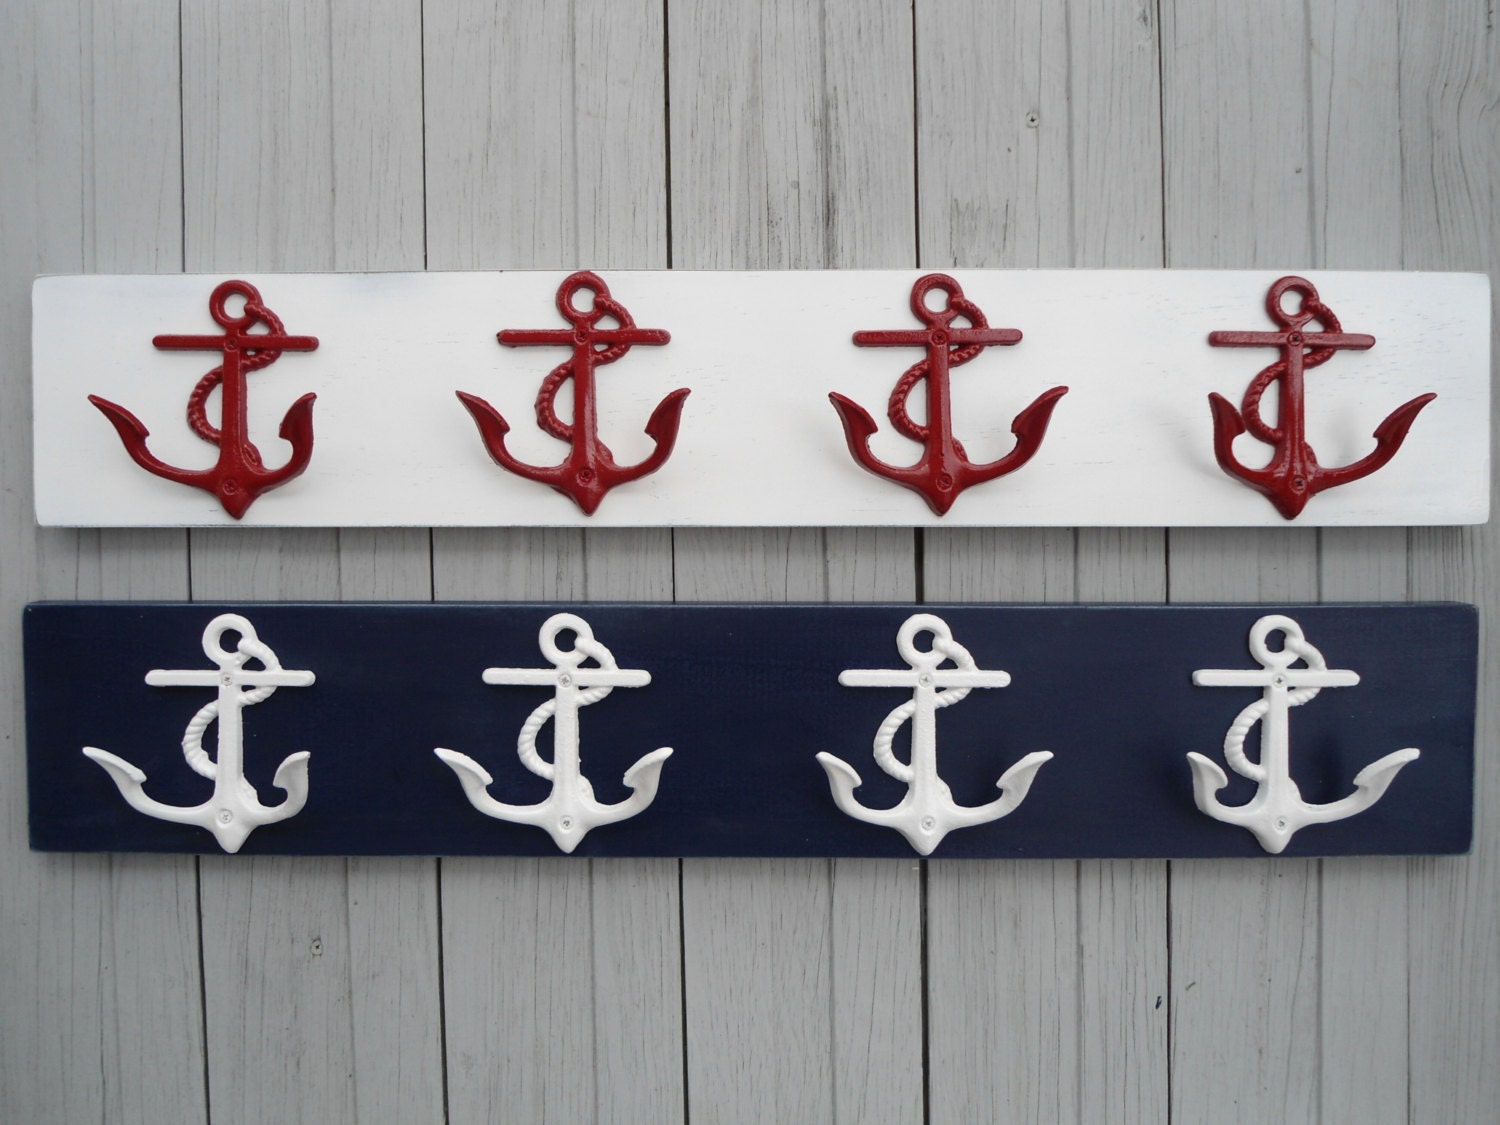 Popular items for anchor coat rack on Etsy